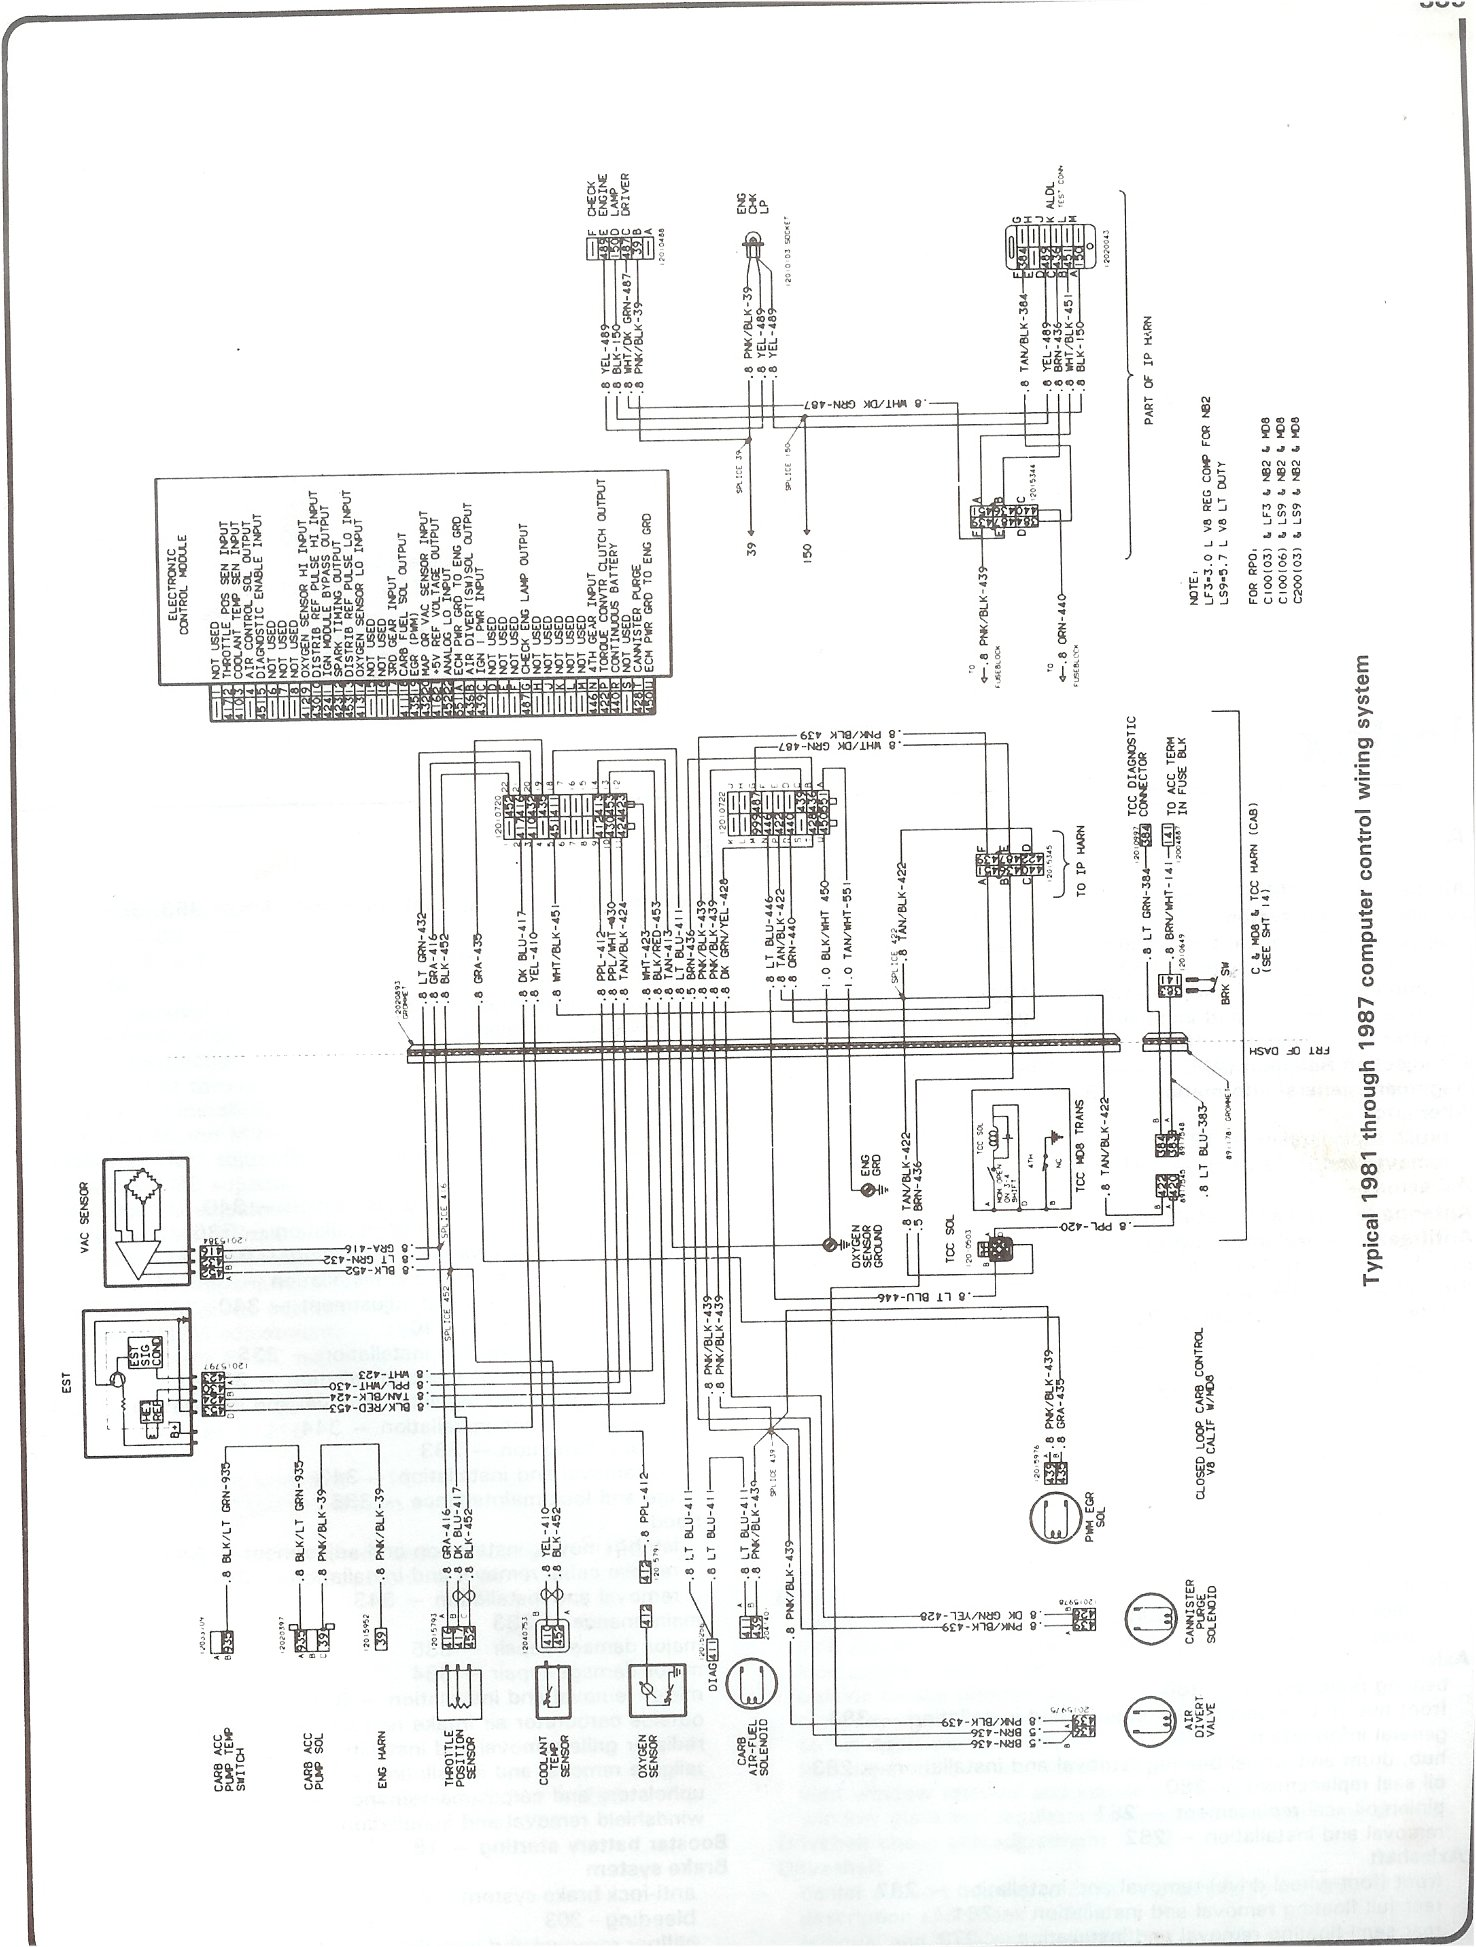 hight resolution of 1986 gmc radio wiring detailed schematics diagram rh jvpacks com 86 gmc pickup parts 92 gmc